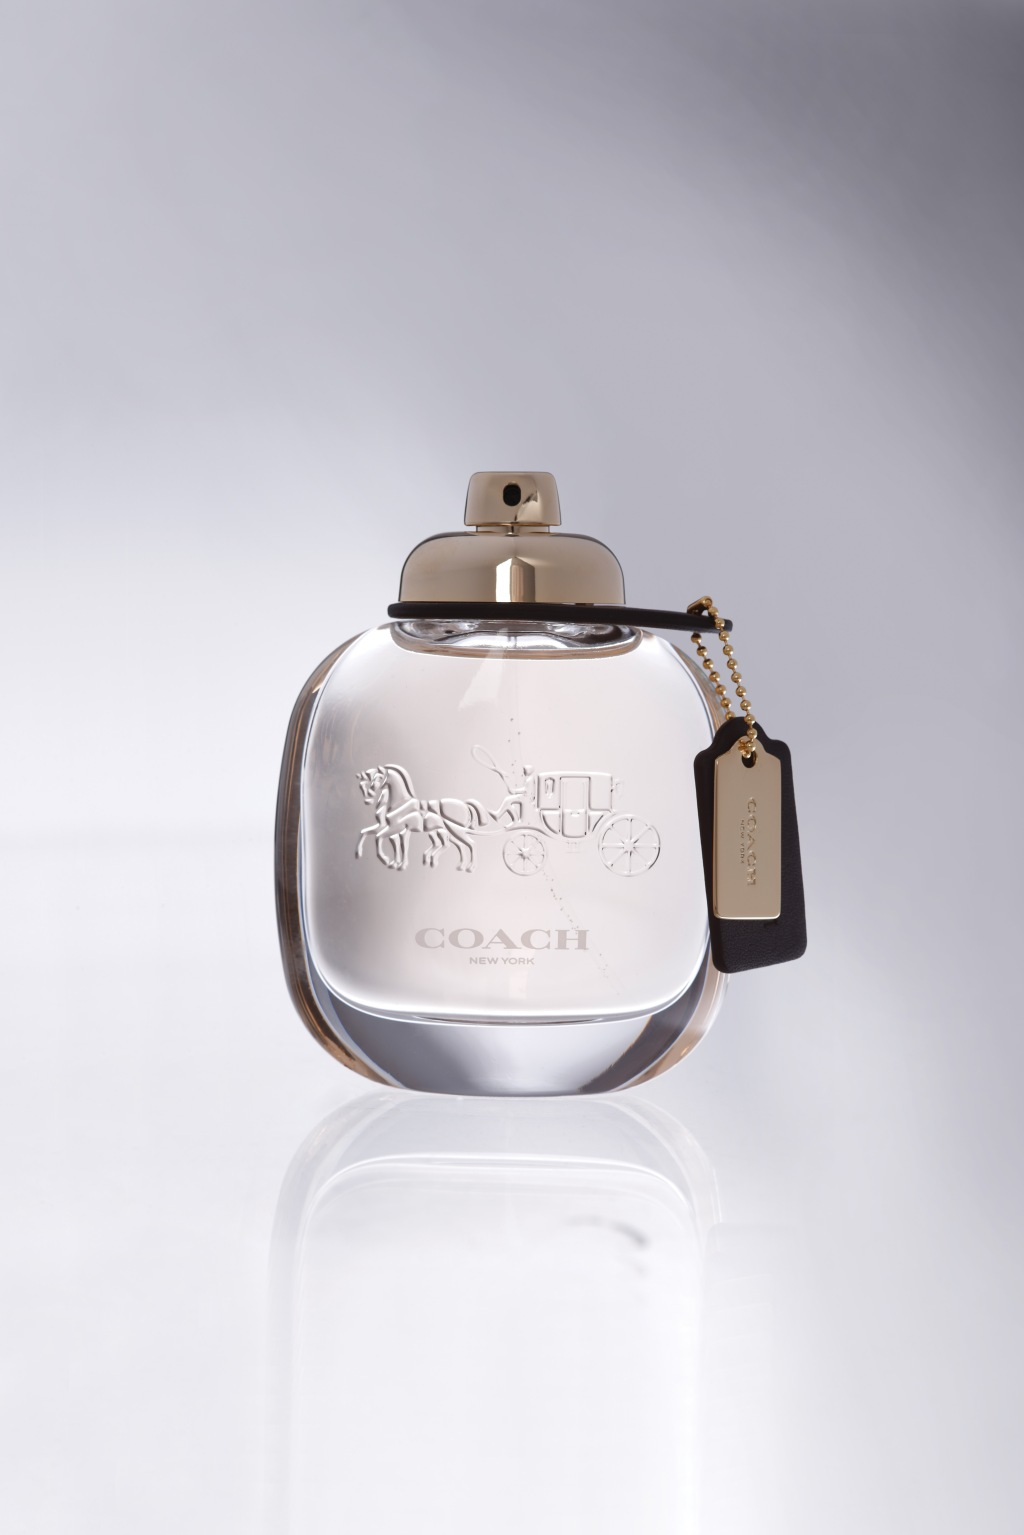 A Coach fragrance.